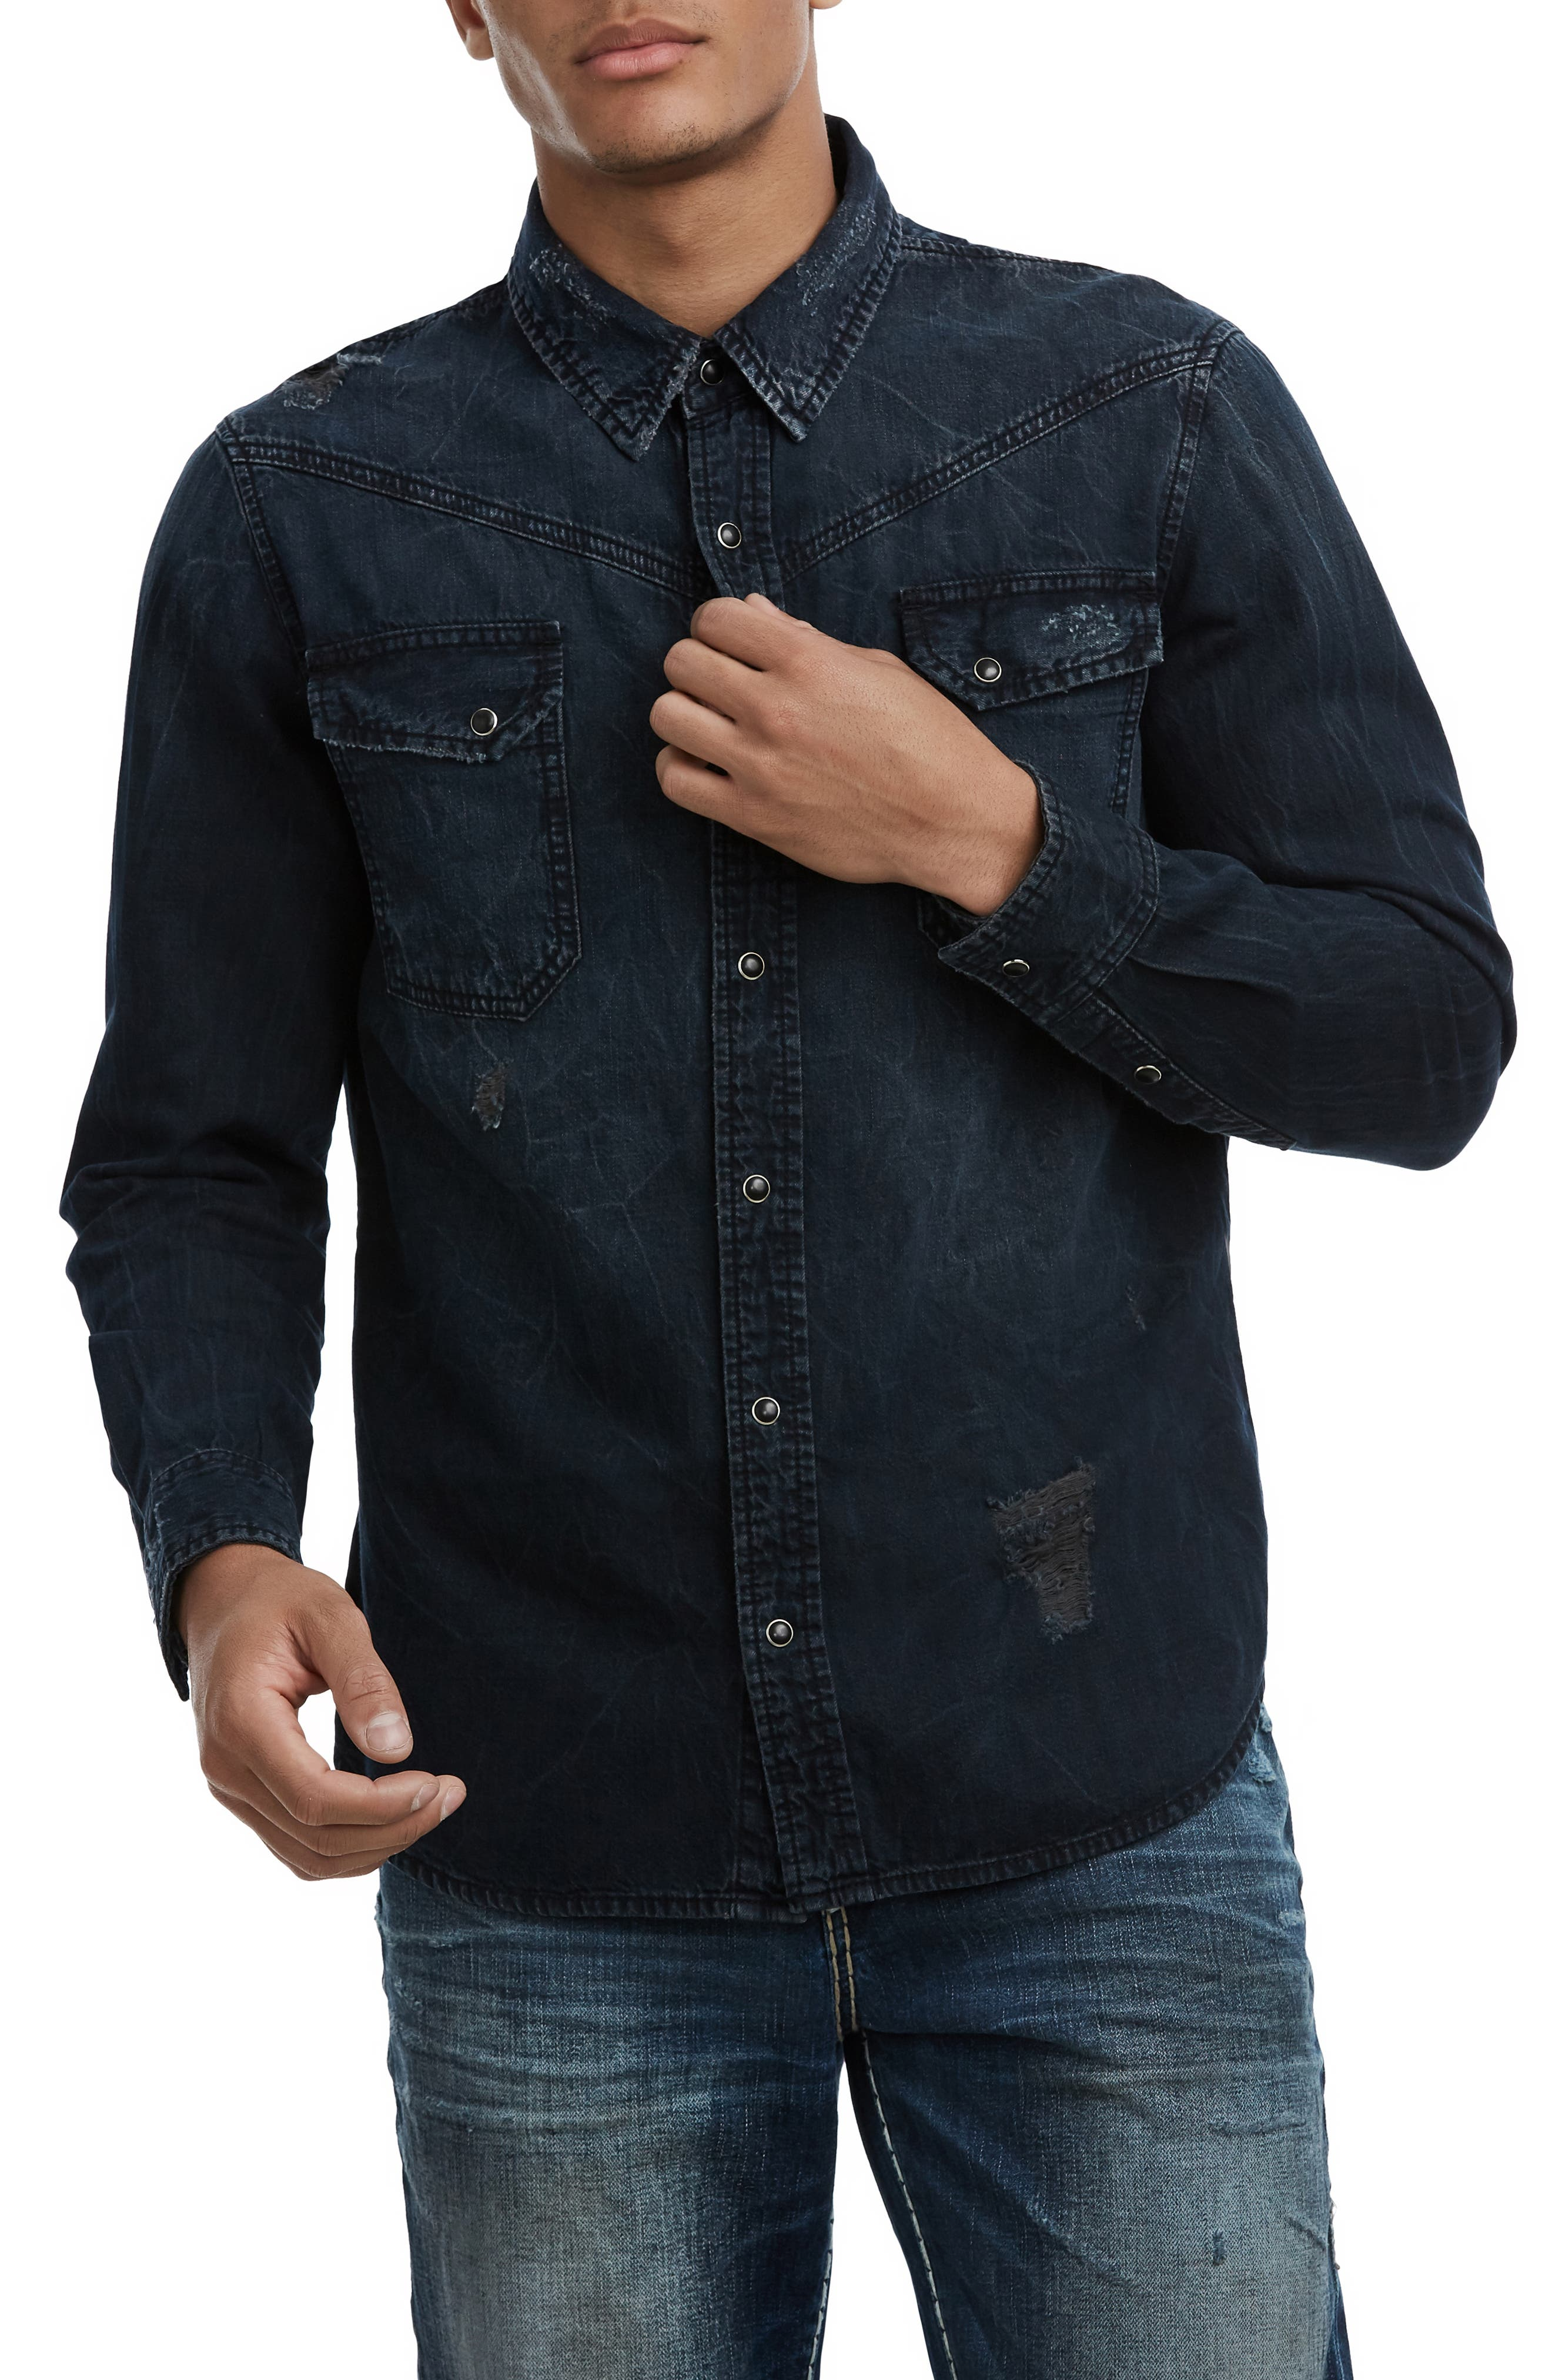 Carter Distressed Denim Shirt,                             Main thumbnail 1, color,                             INDIGO RIVAL